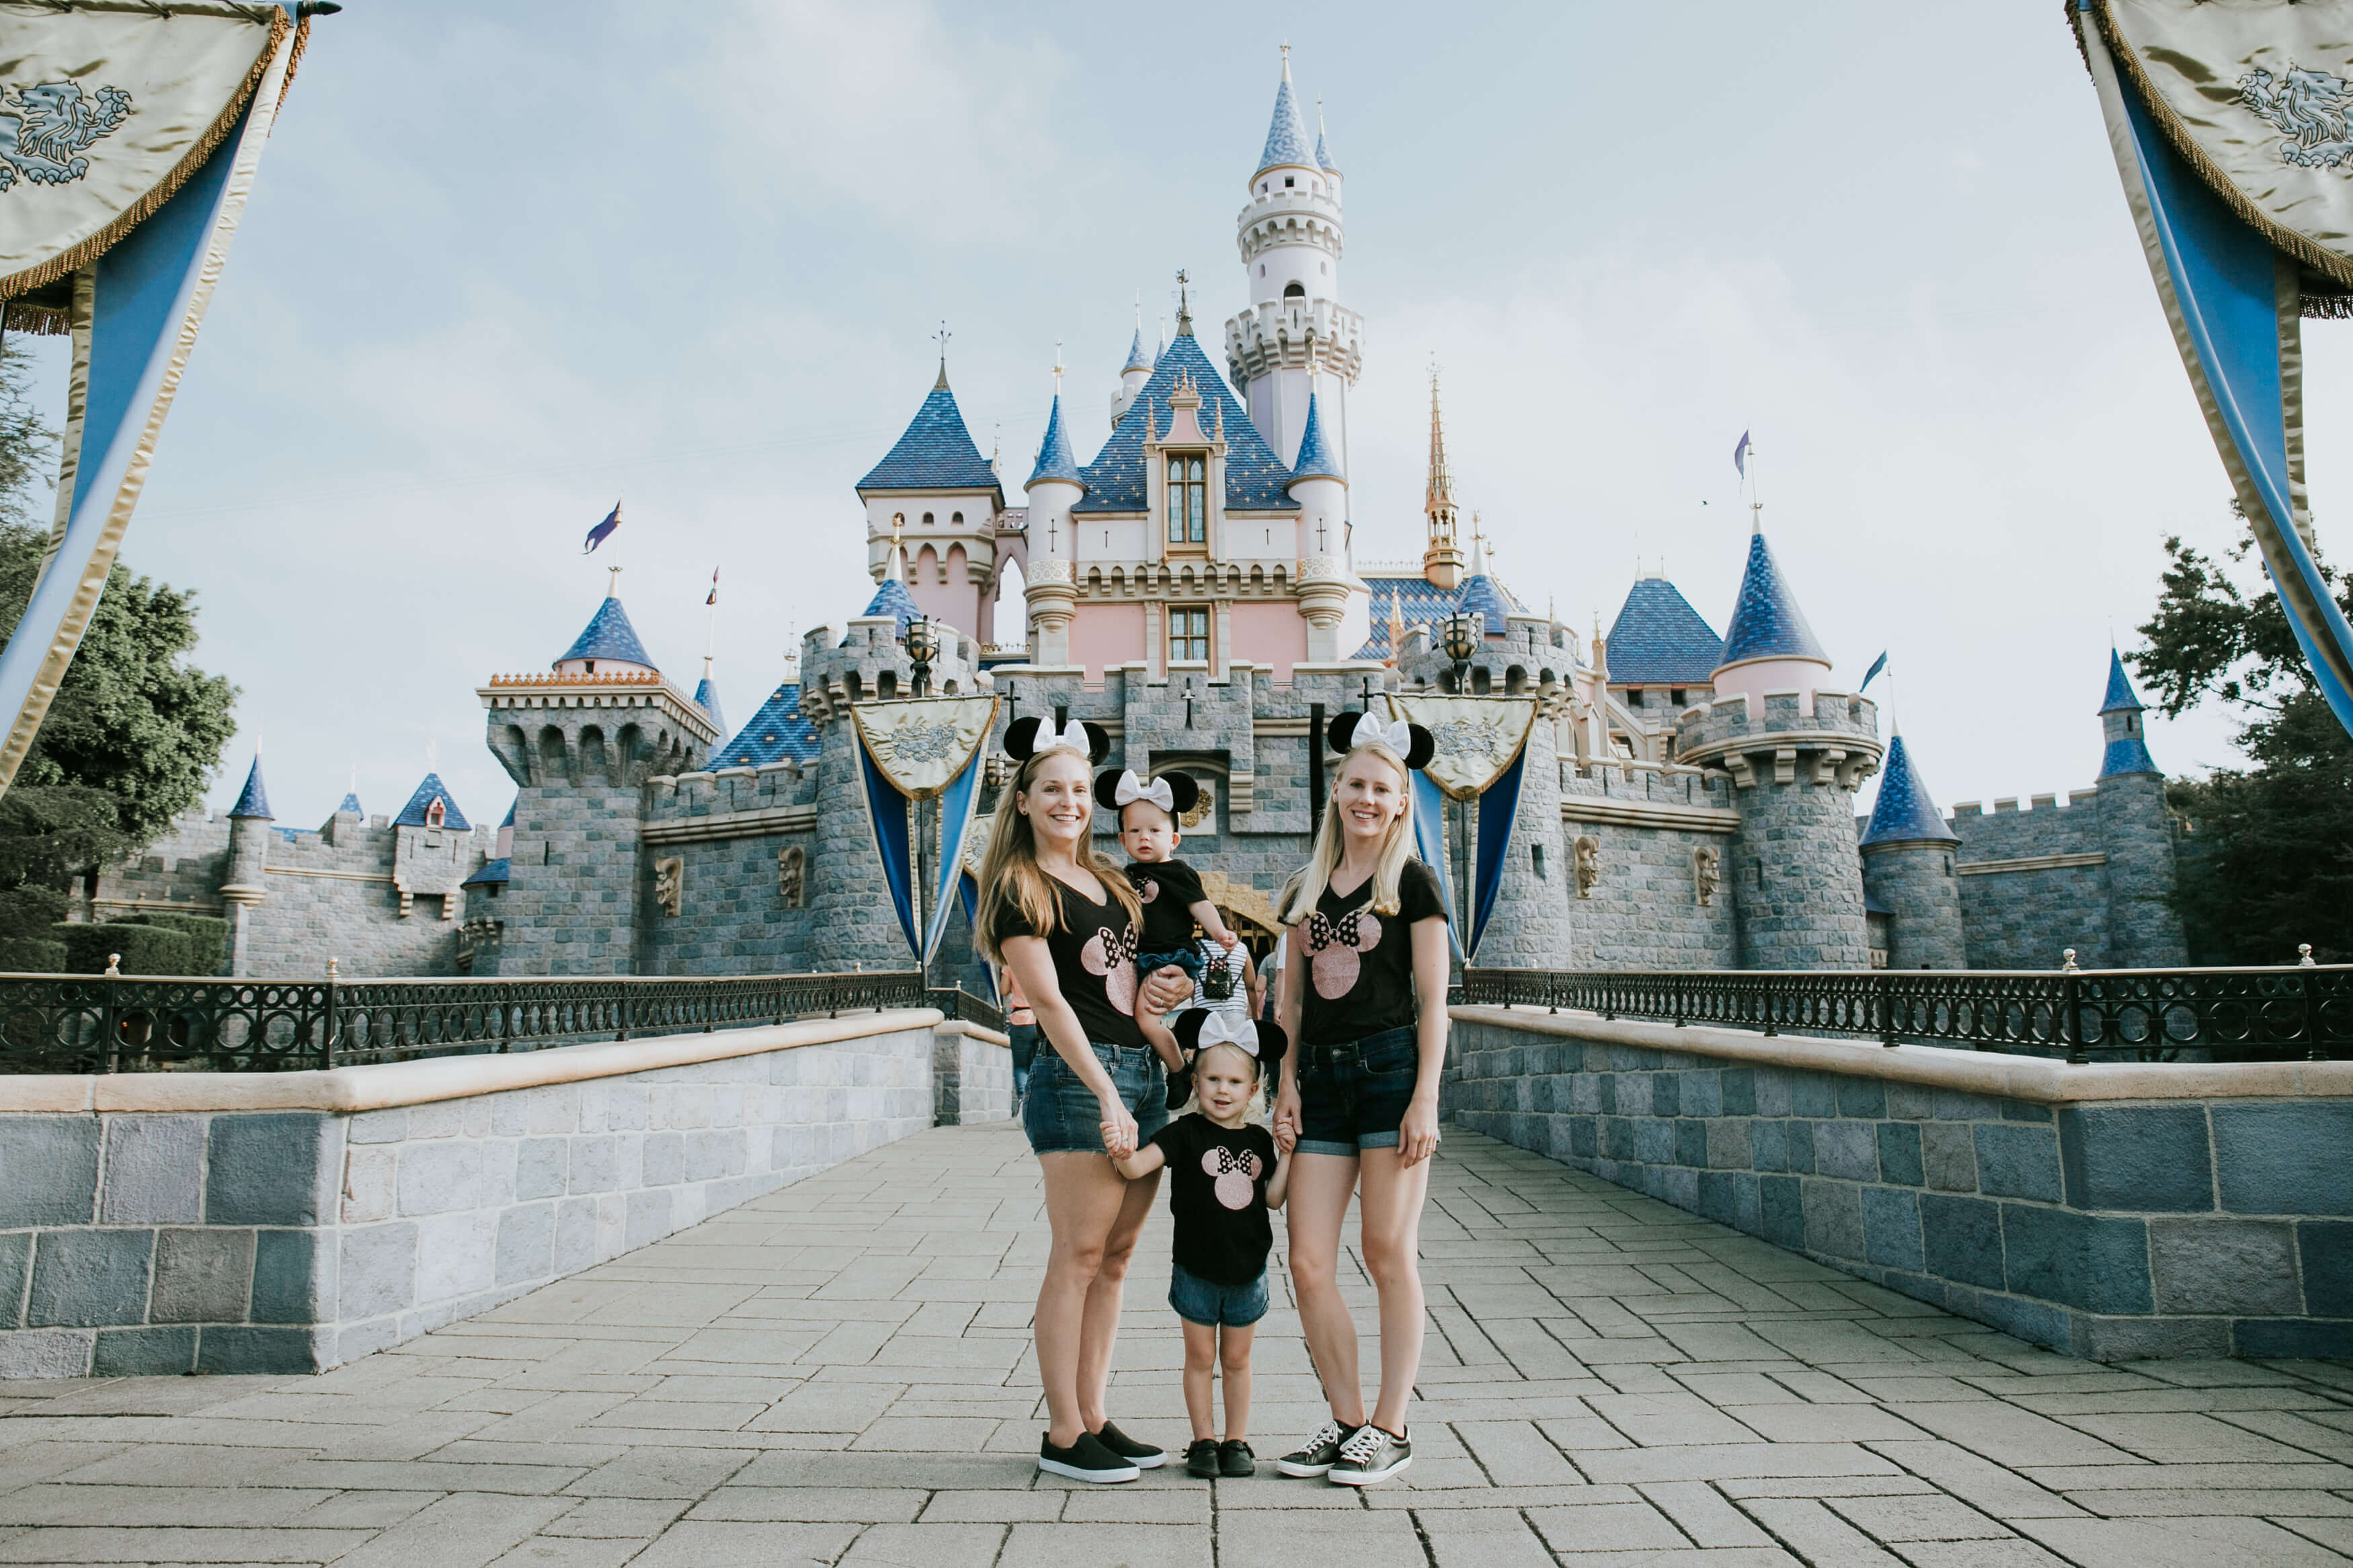 LGBTQ+ family with two young kids standing in front of the castle in Disneyland, Anaheim